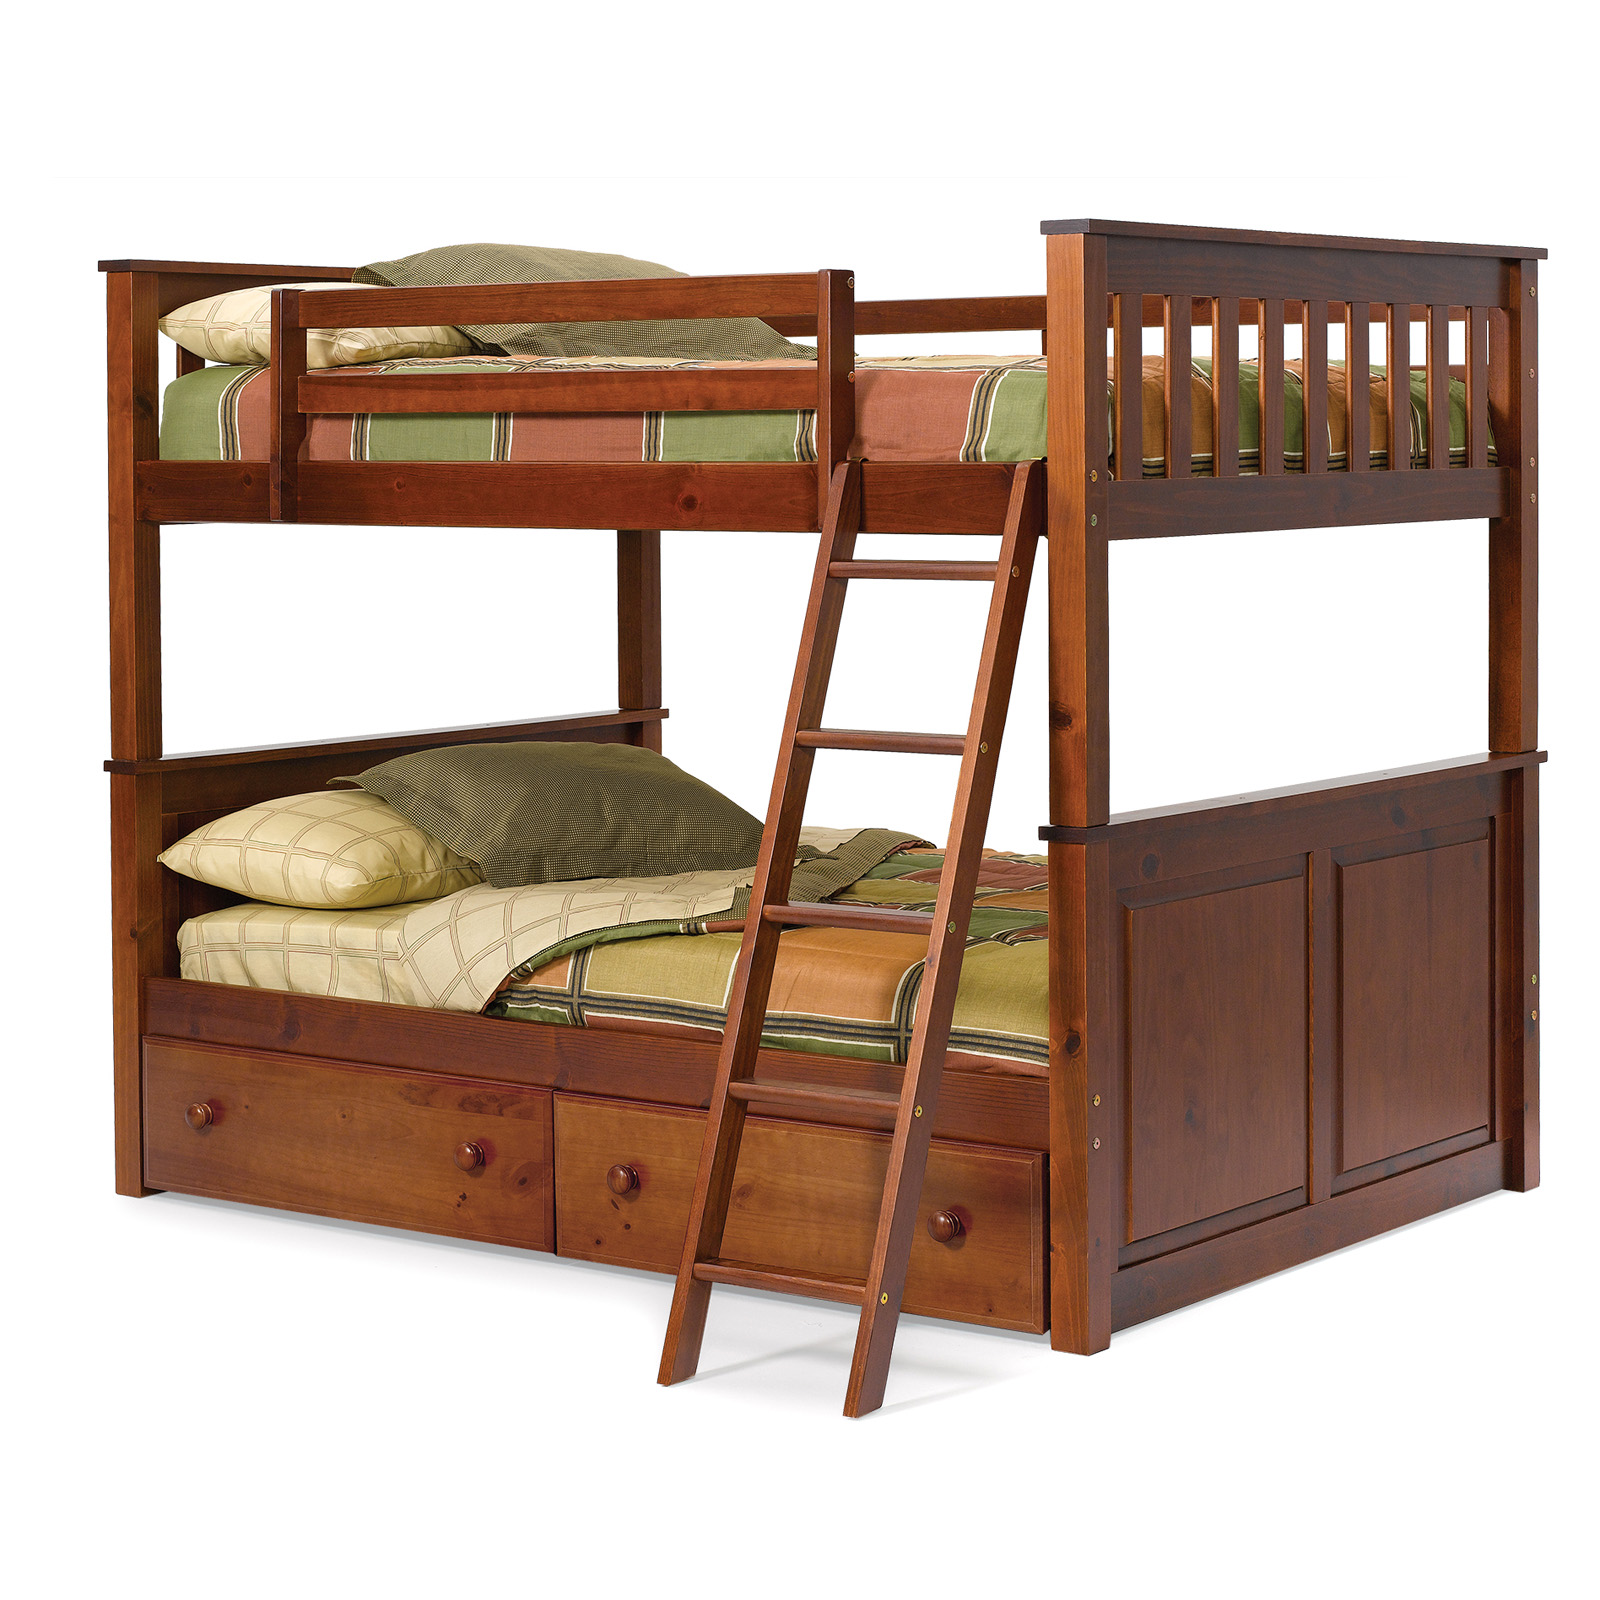 Woodcrest Pine Ridge Full over Full Bunk Bed - Chocolate - Bunk Beds ...